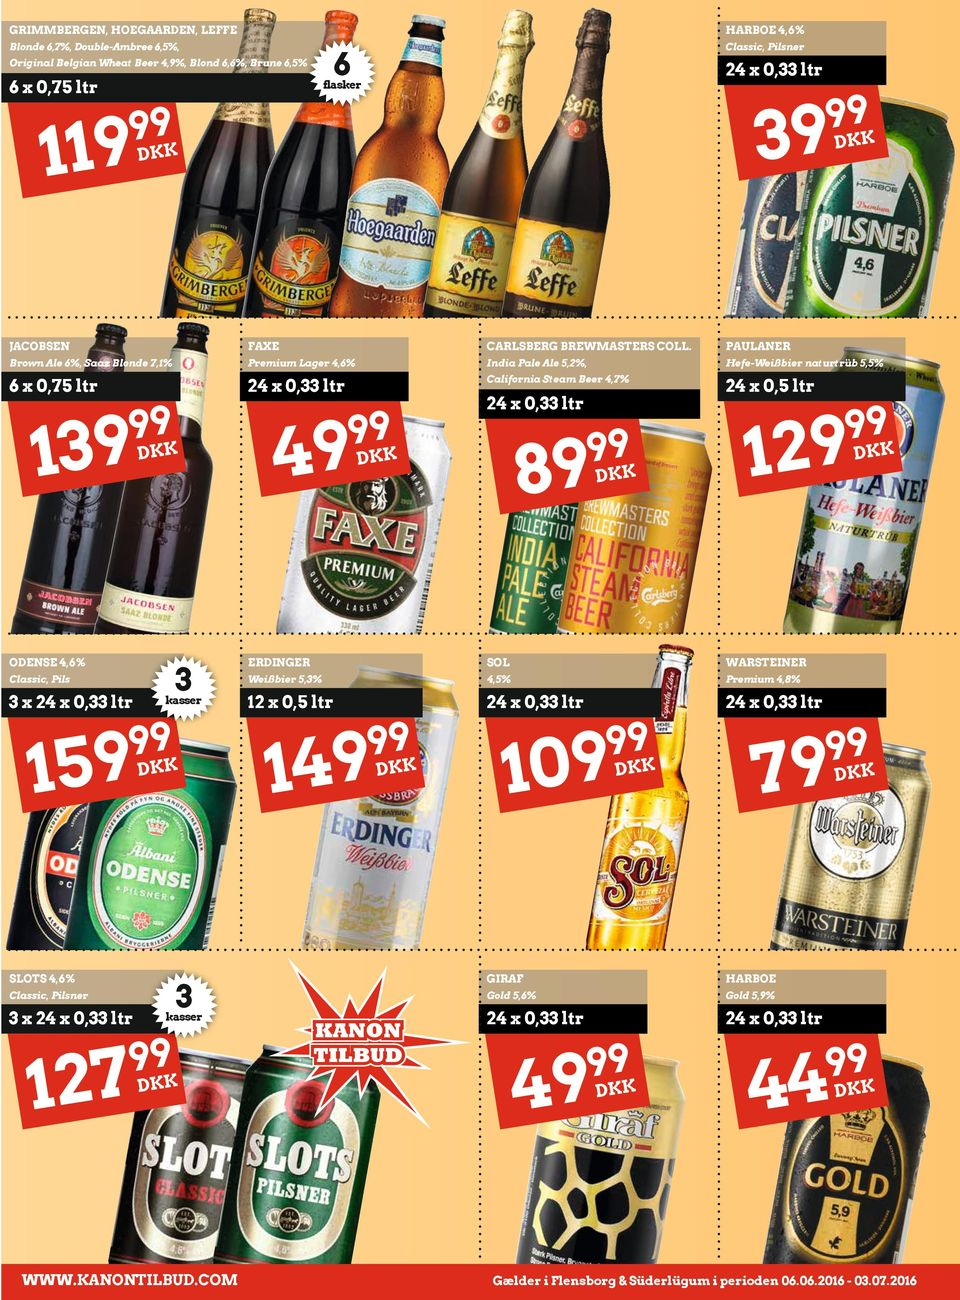 PAULANER Brown Ale 6%, Saaz Blonde 7,1% Premium Lager 4,6% India Pale Ale 5,2%, Hefe-Weißbier naturtrüb 5,5% 6 x California Steam Beer 4,7% 24